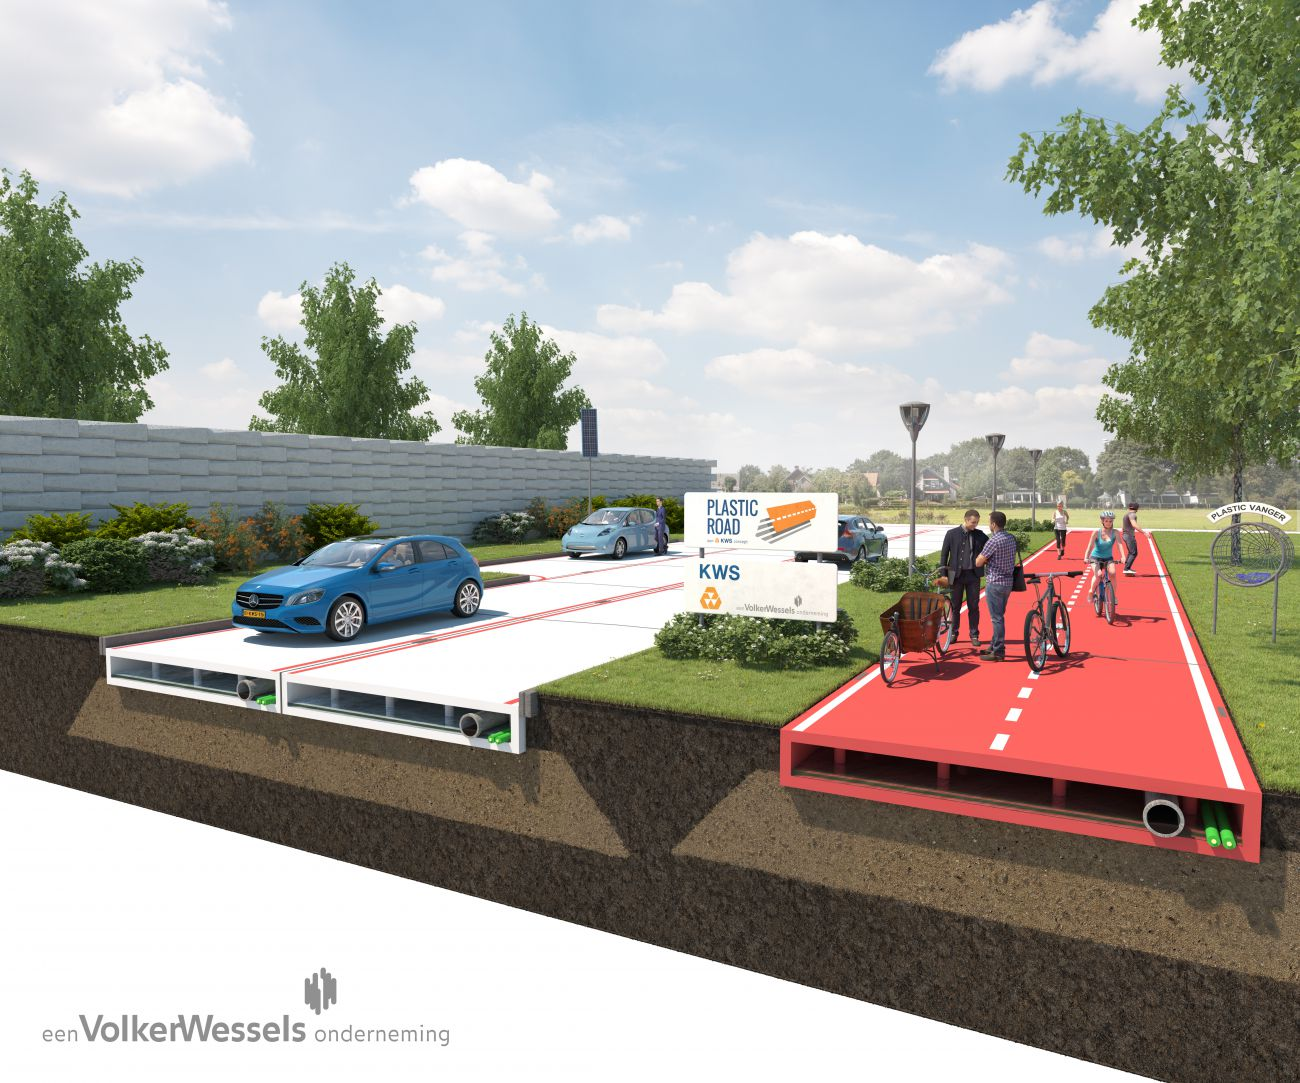 Netherlands to Try Recycled Plastic Roads; More Durable, Climate Friendly Than Asphalt